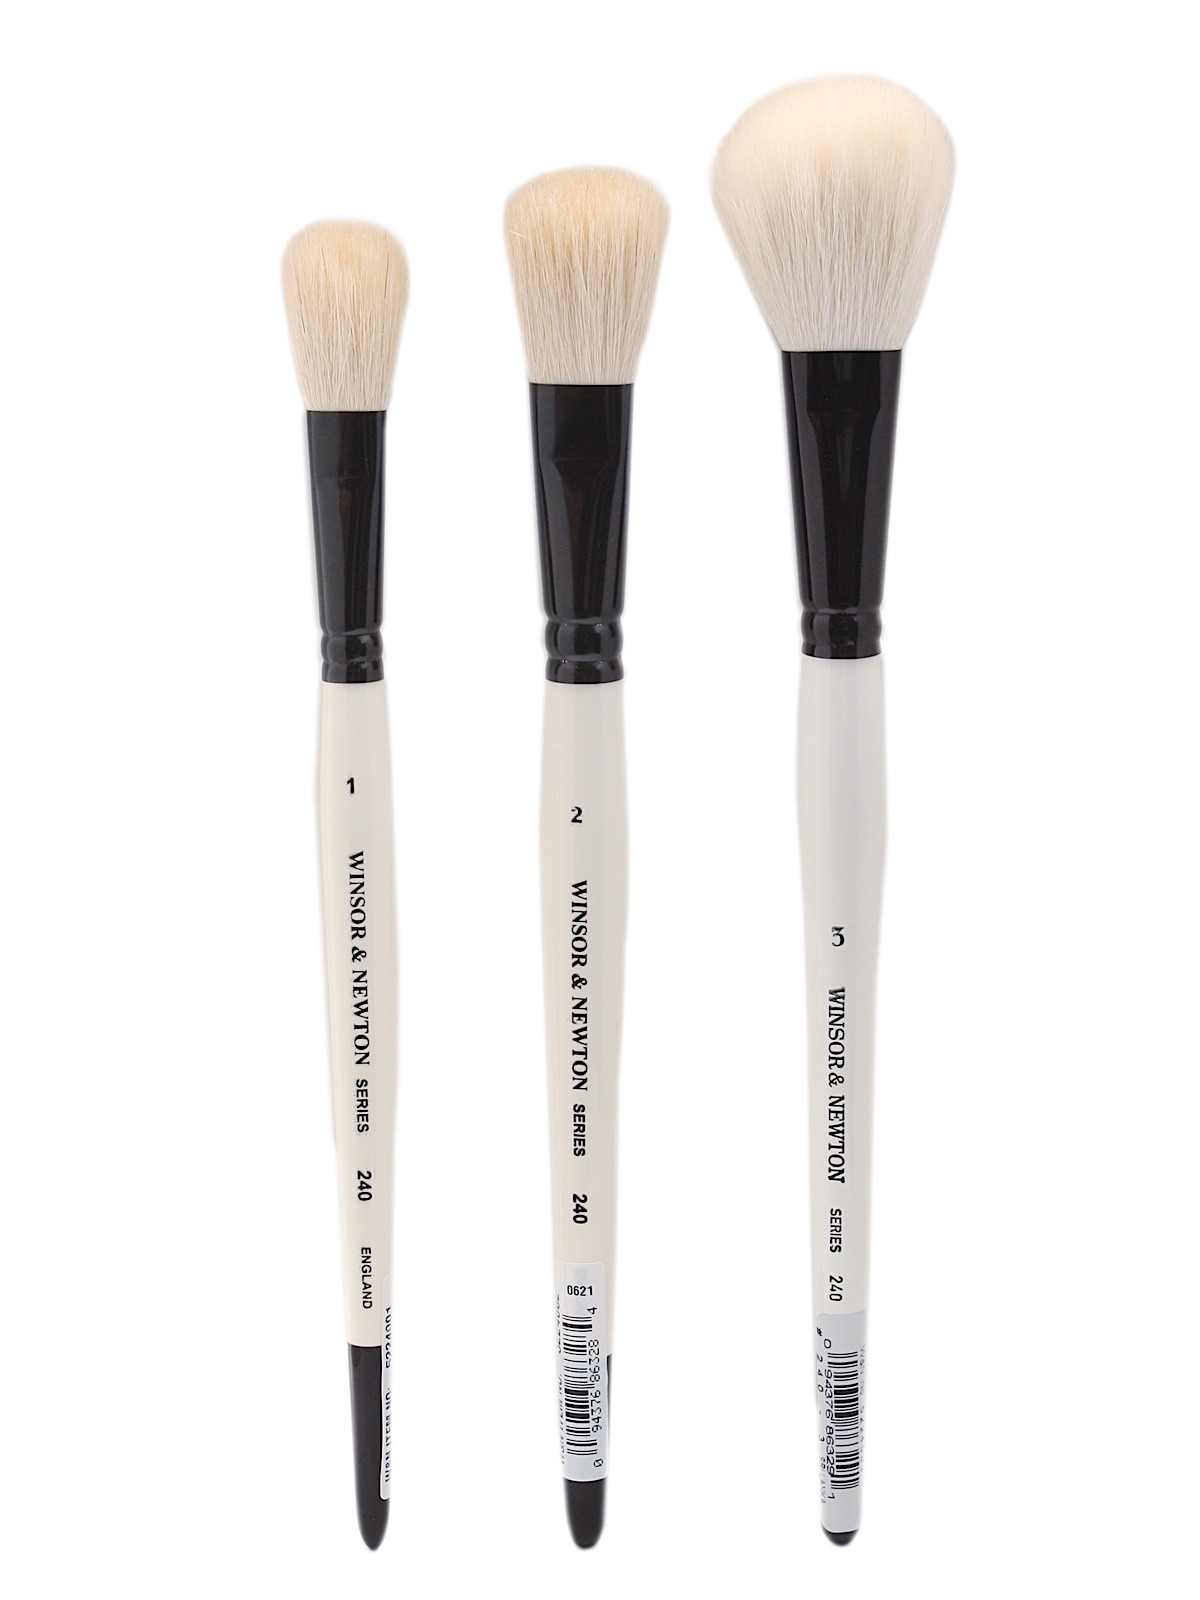 Series 240 Goat Hair Wash Brushes